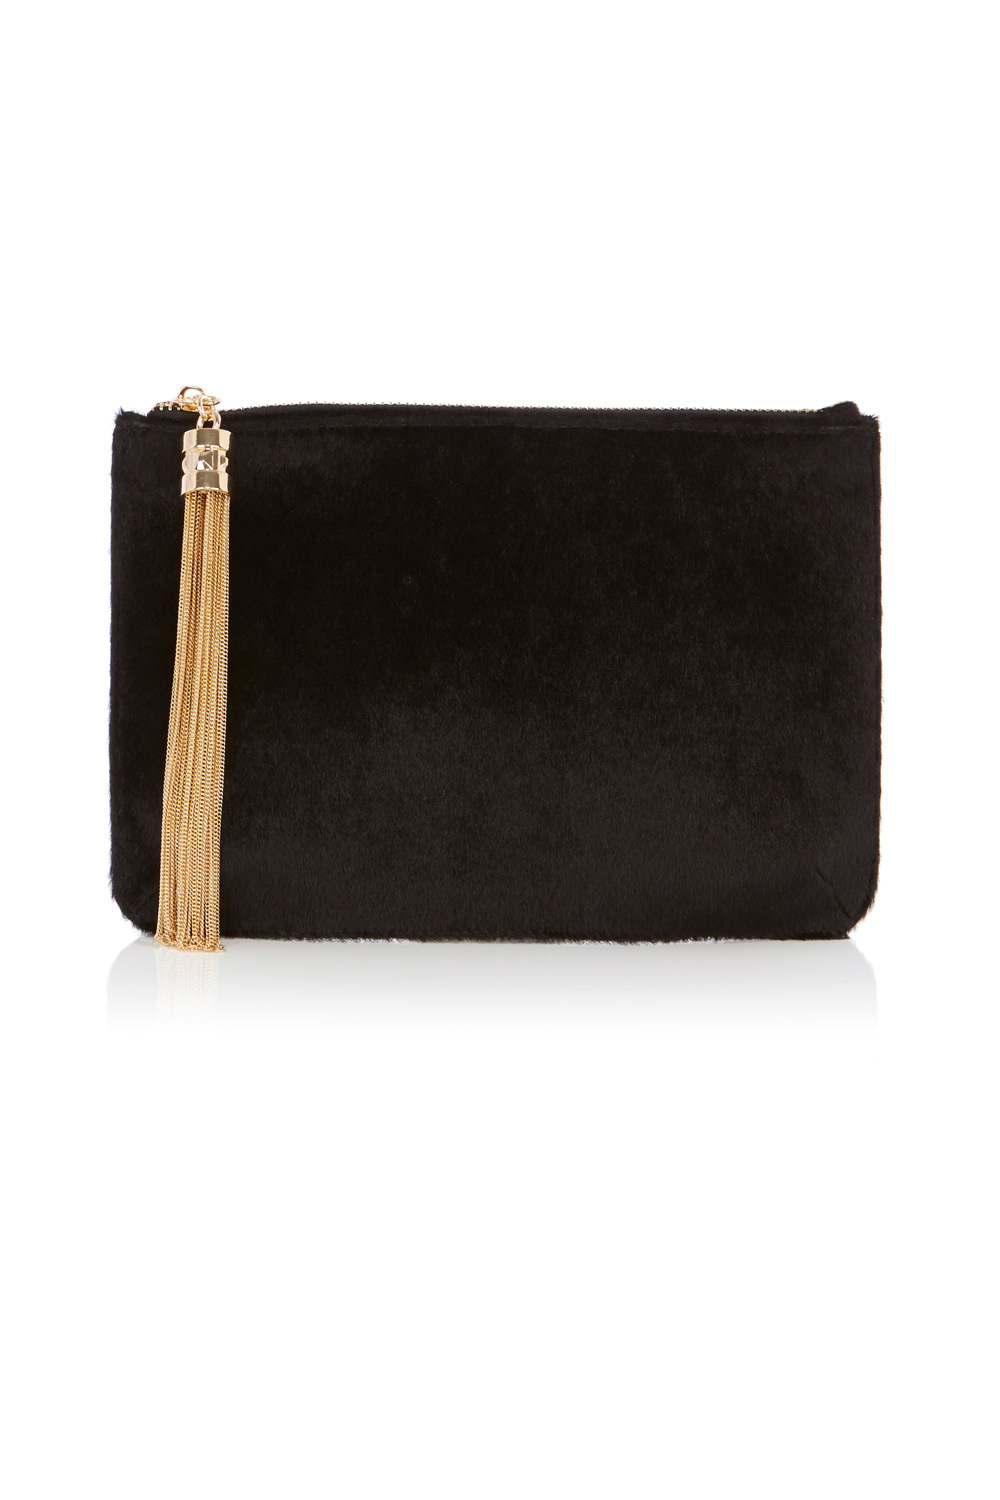 Megan Faux Pony Clutch - secondary colour: gold; predominant colour: black; occasions: evening, occasion; type of pattern: standard; style: clutch; length: hand carry; size: standard; material: animal skin; embellishment: tassels; pattern: plain; finish: plain; season: a/w 2016; wardrobe: event